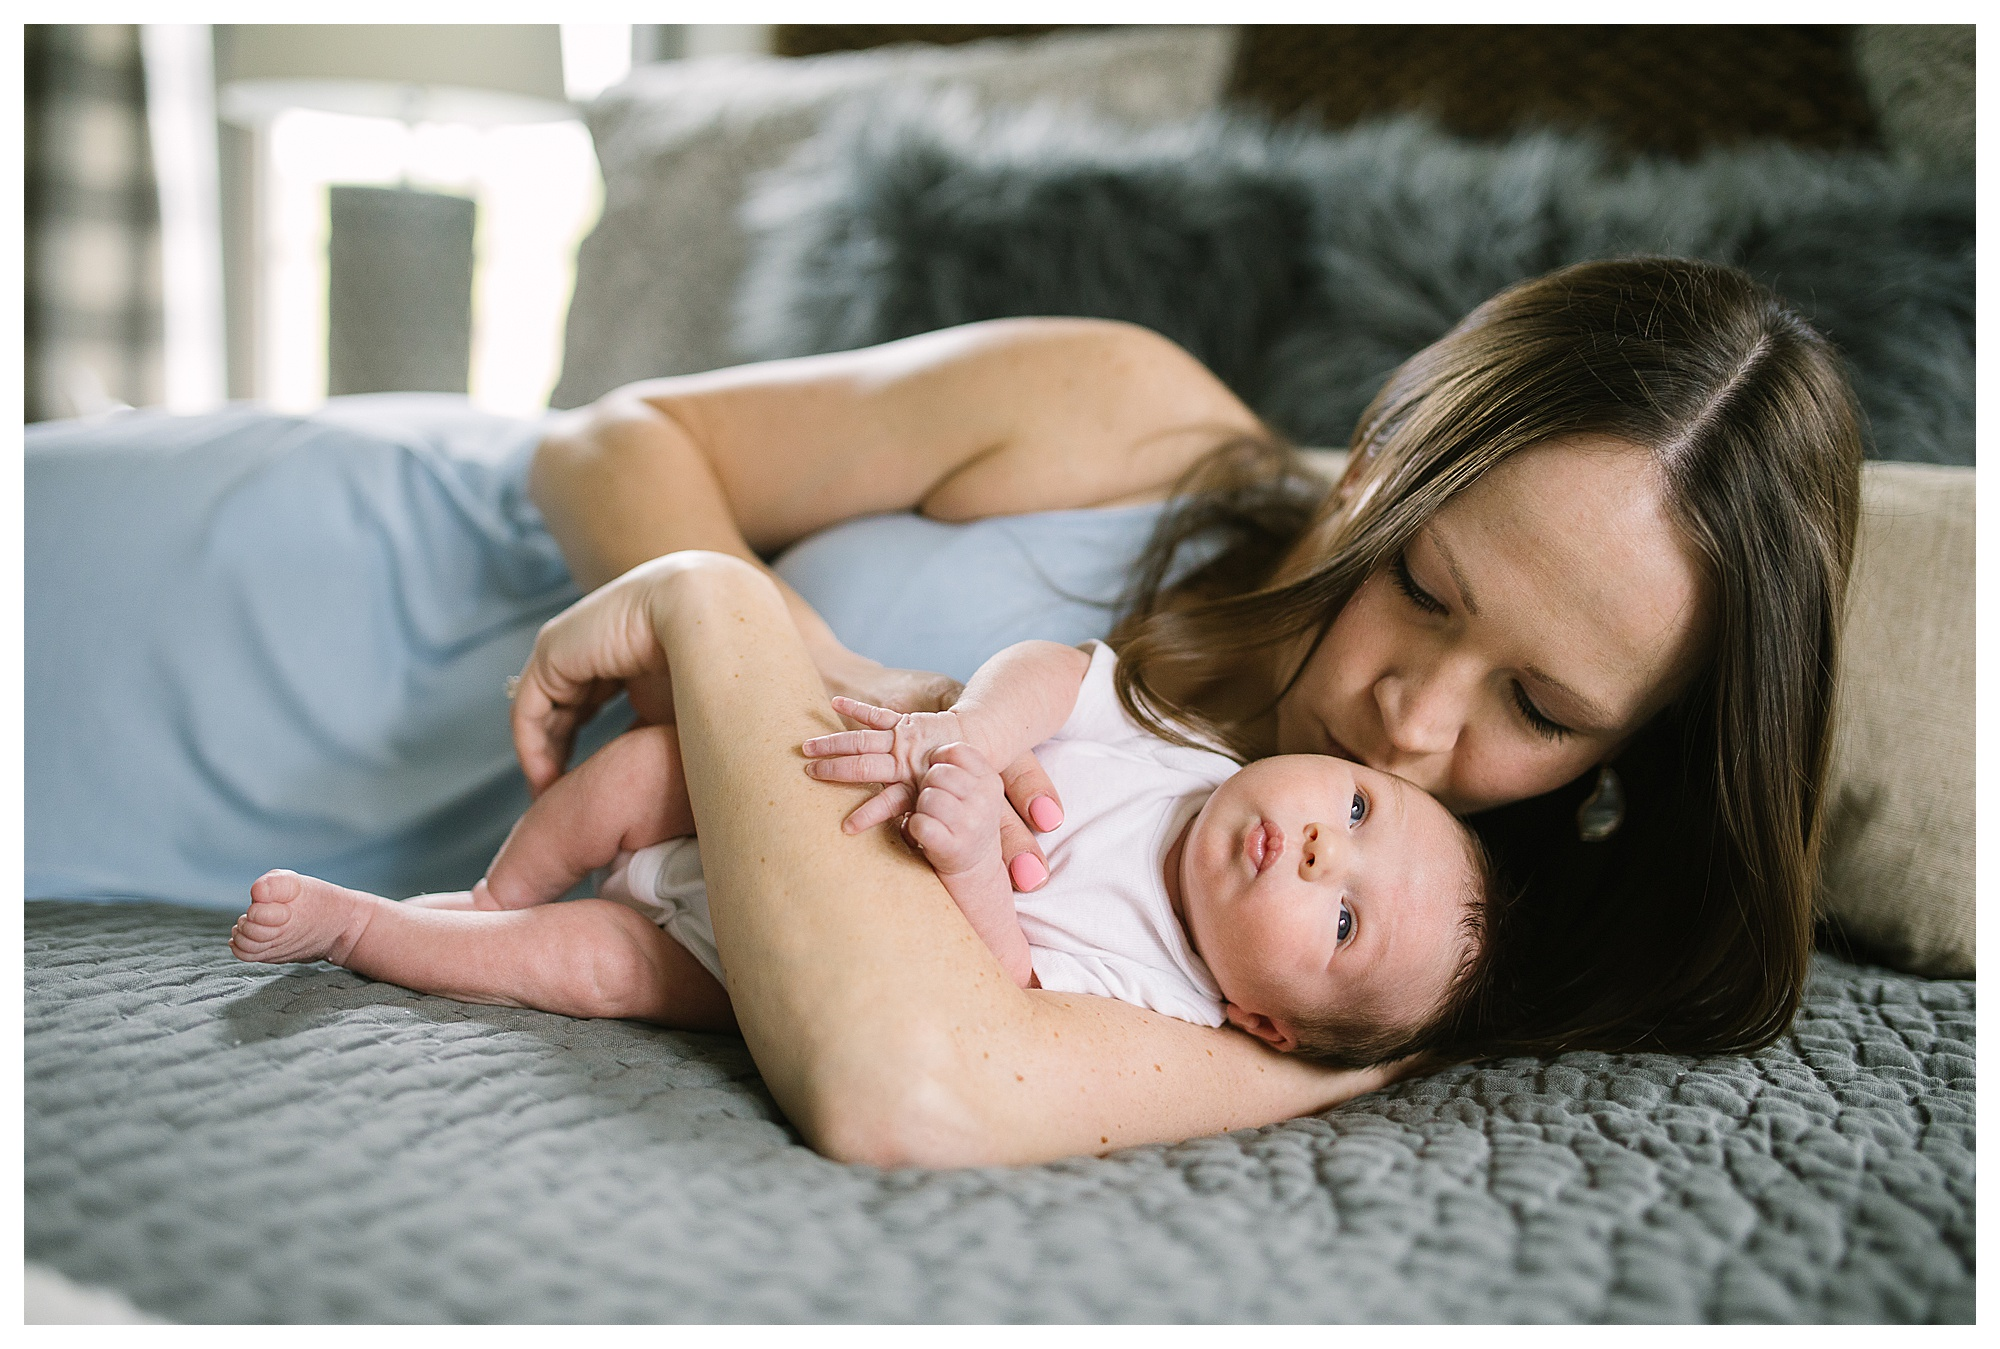 Emily Lapish Photo + Film documentary newborn photography_0014.jpg